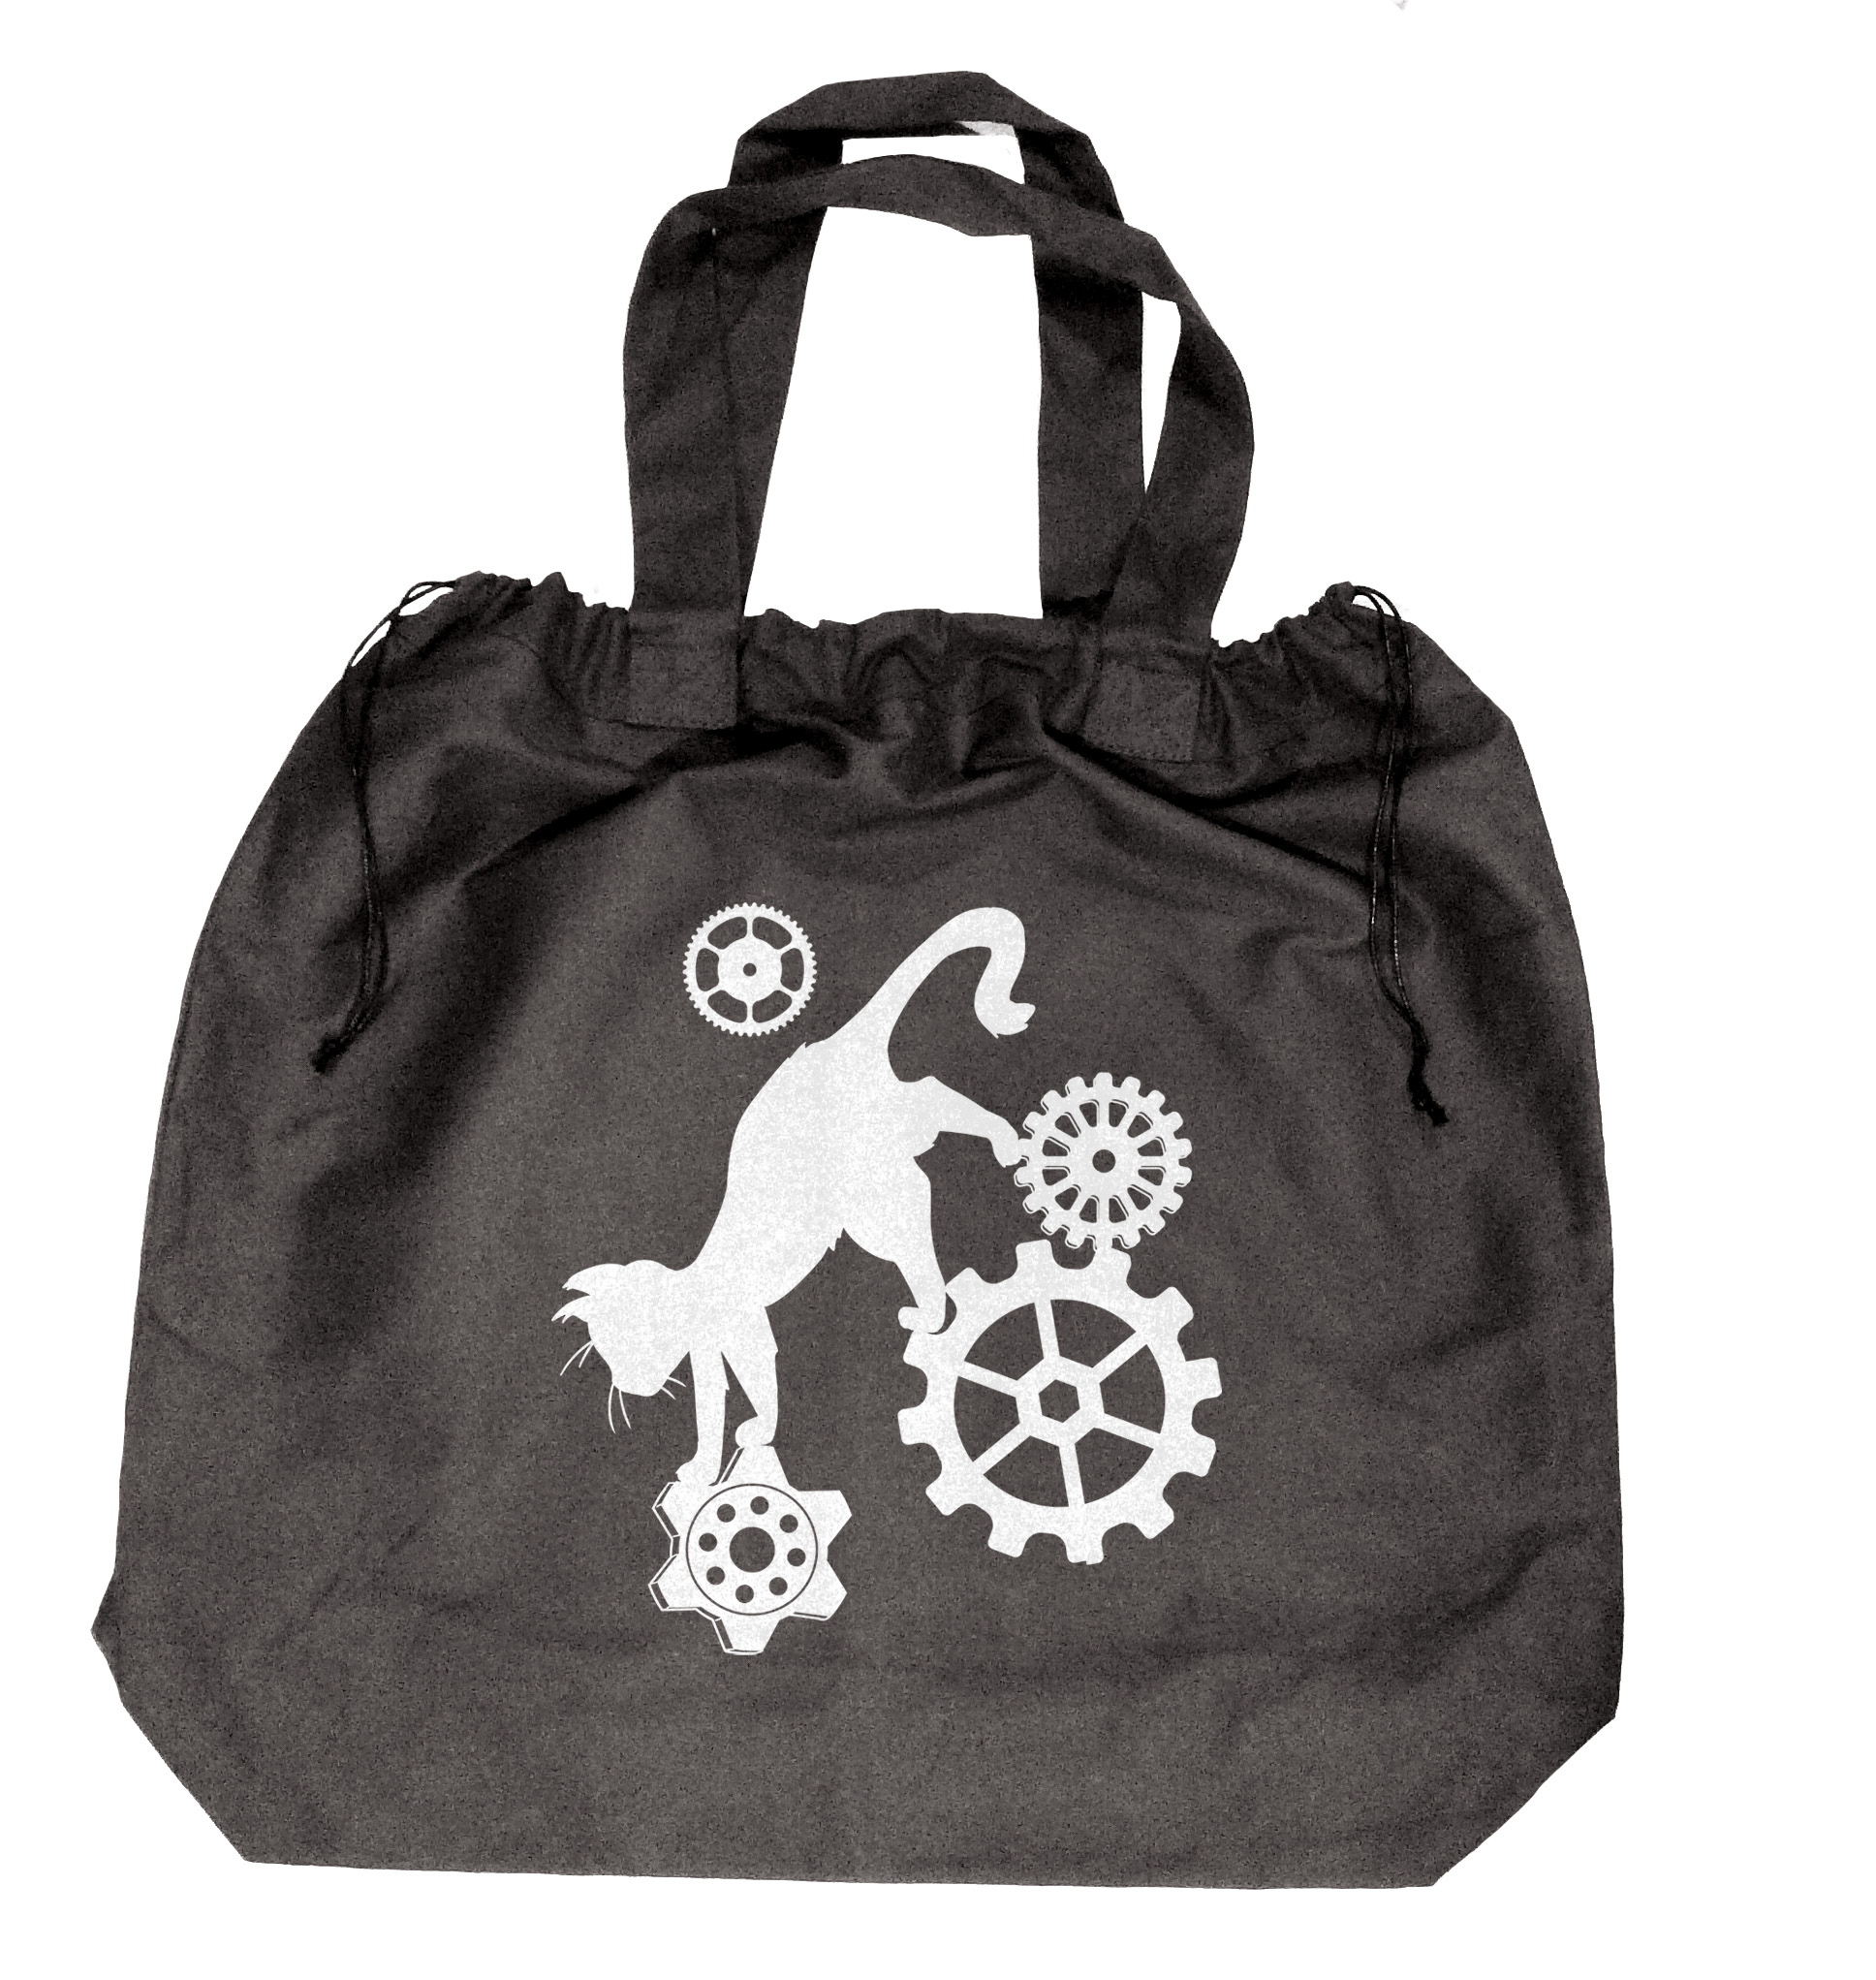 Steampunk Cat Extra-Large Drawstring Beach Bag - Black